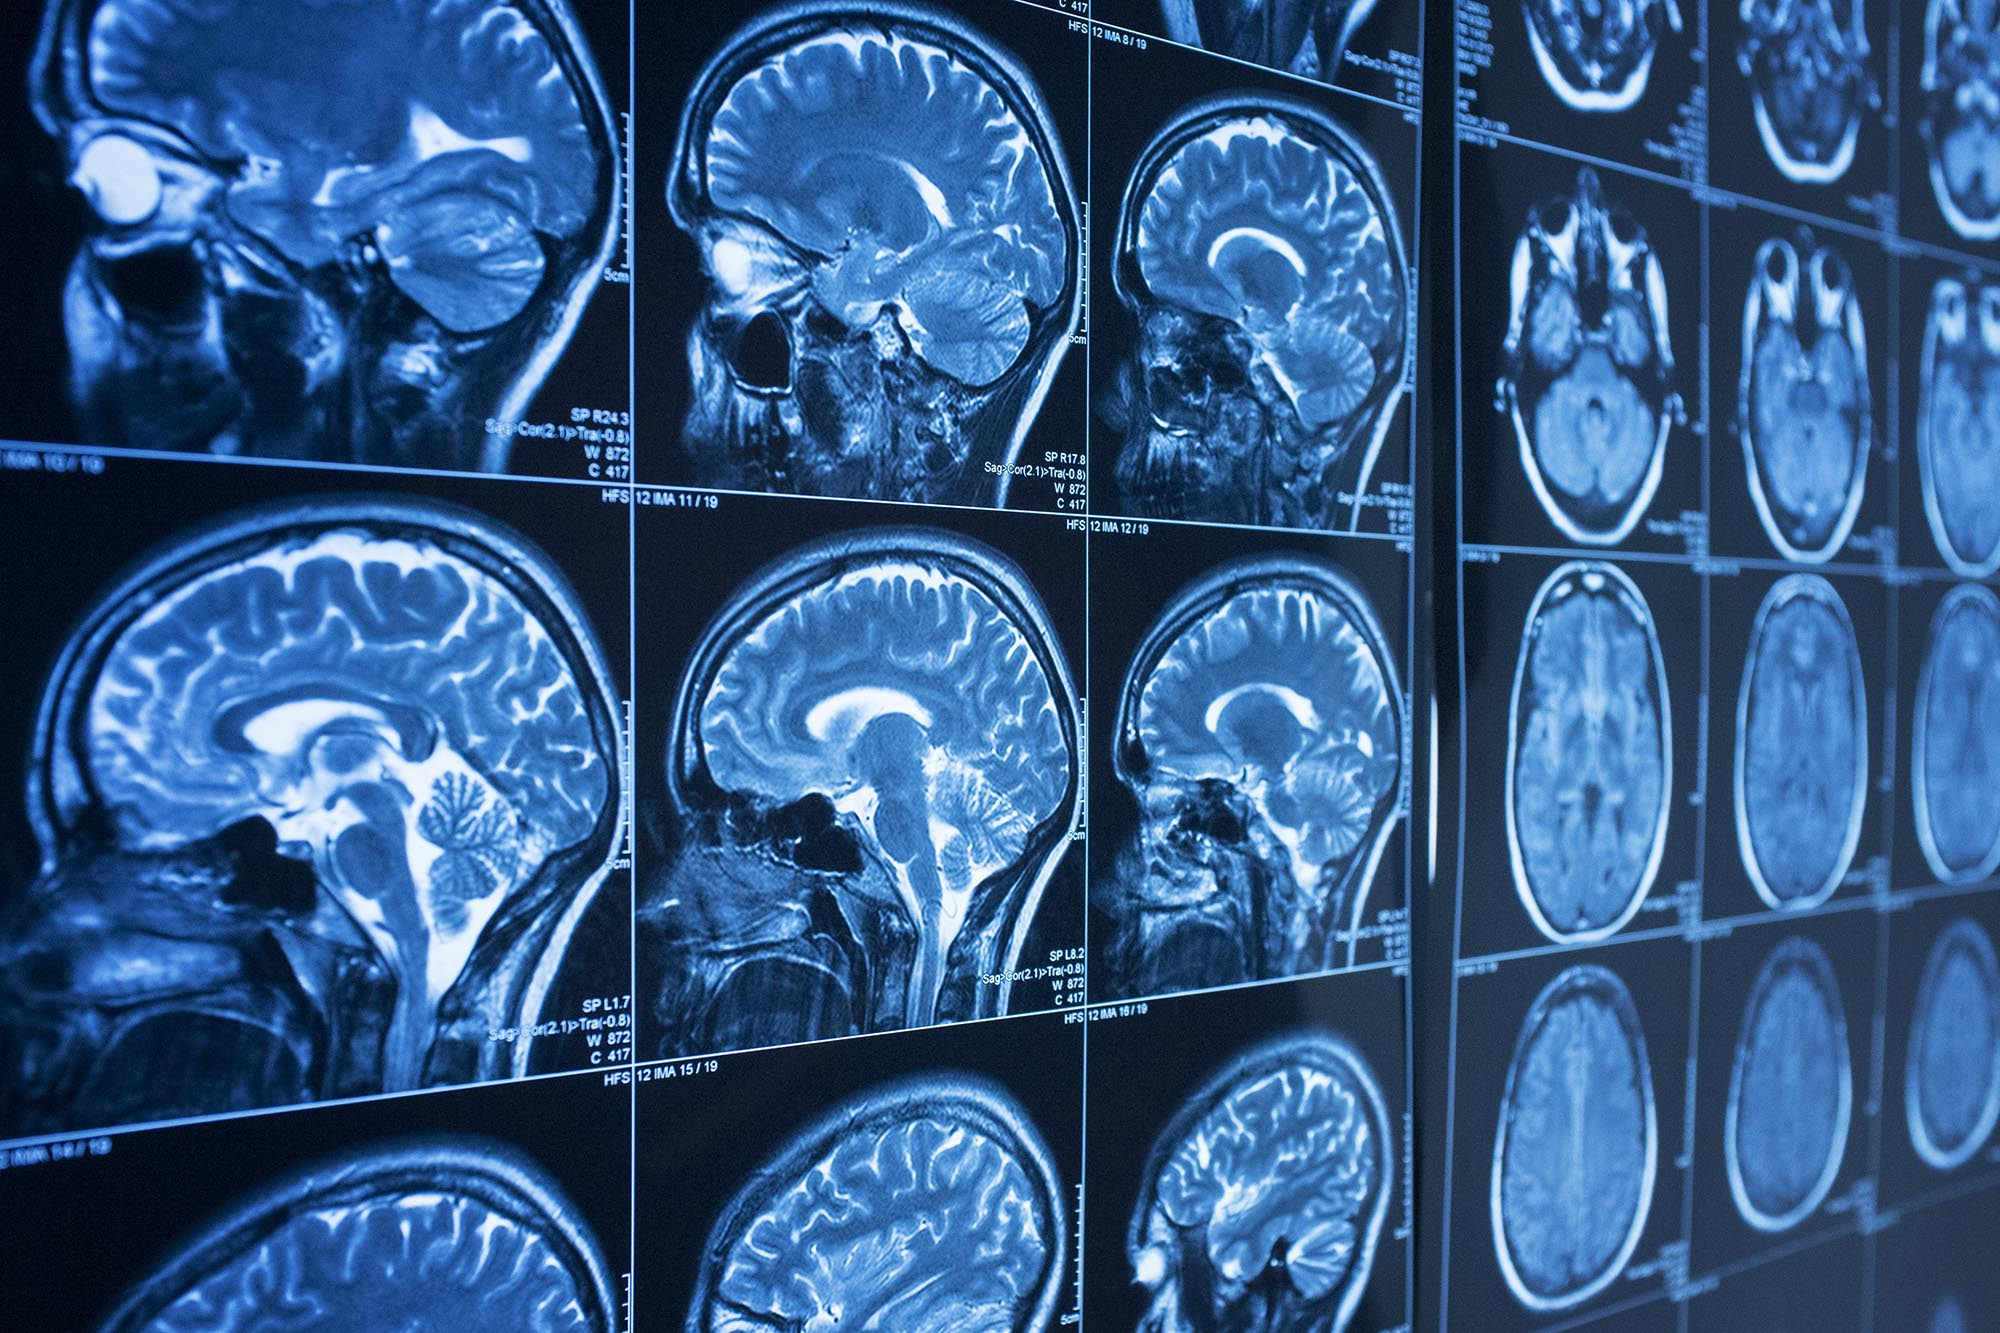 Targeting Calcium Overload Could Improve Stroke Outcomes, UVA Research Suggests